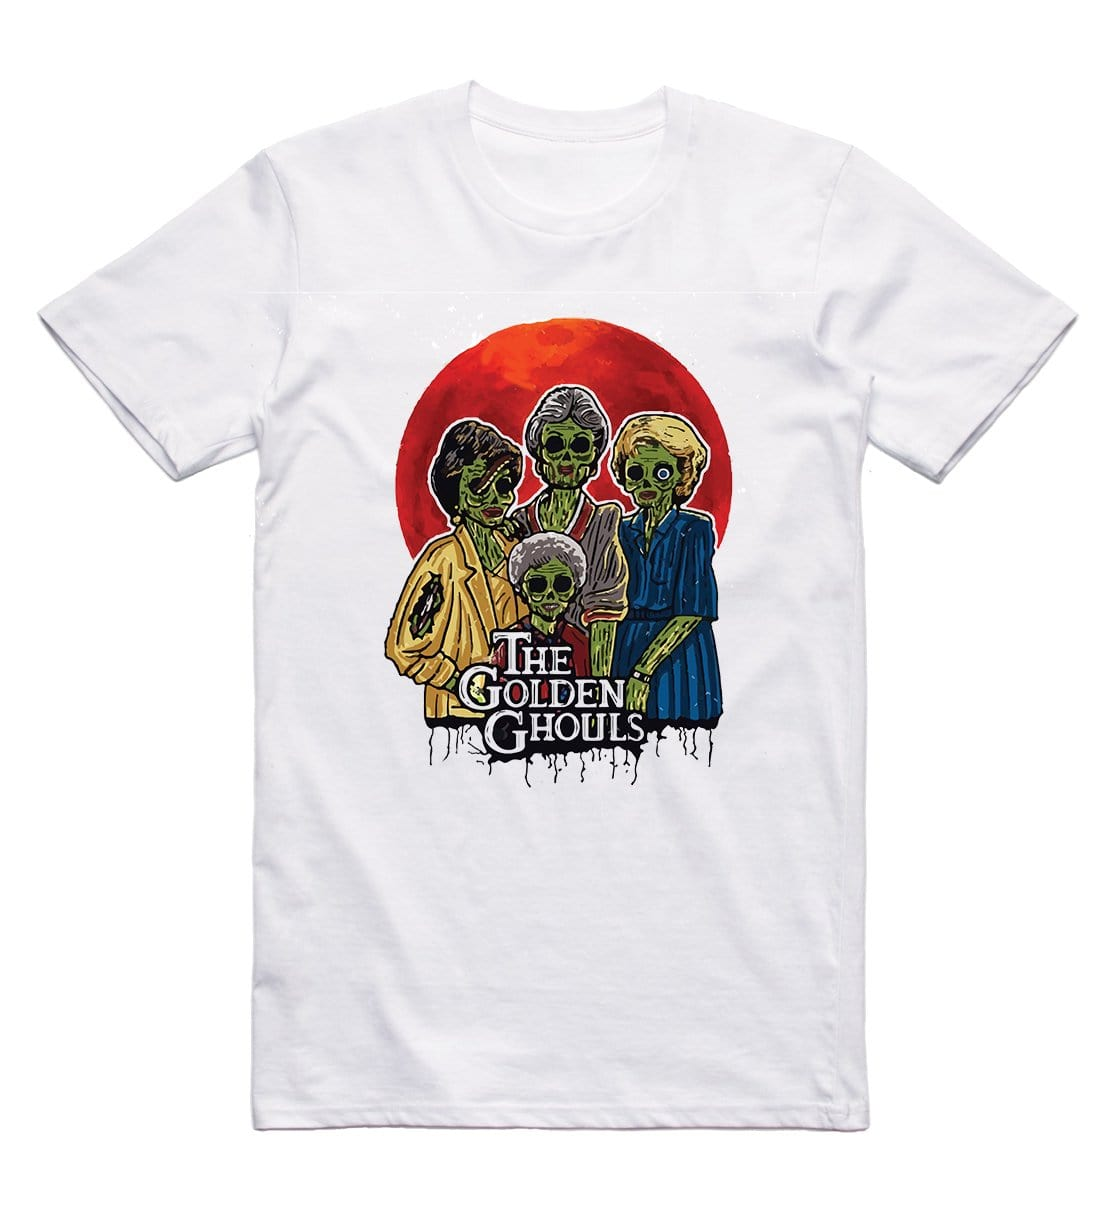 The Golden Ghouls T-Shirt